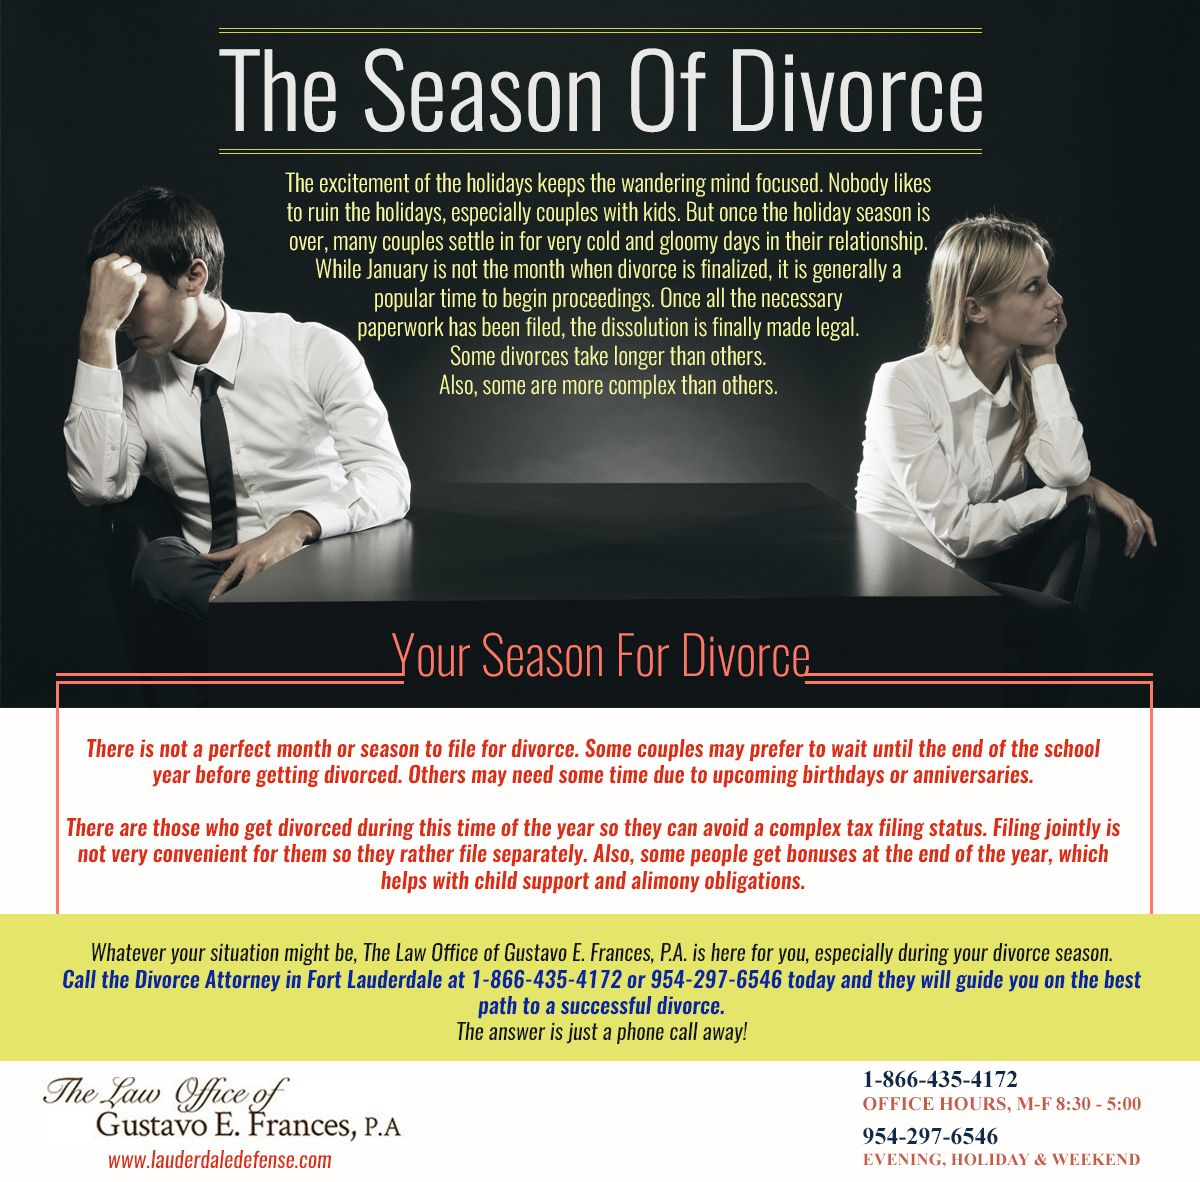 ceb17347183a939524a662595459e57f - How To Get Divorced In Pa Without A Lawyer